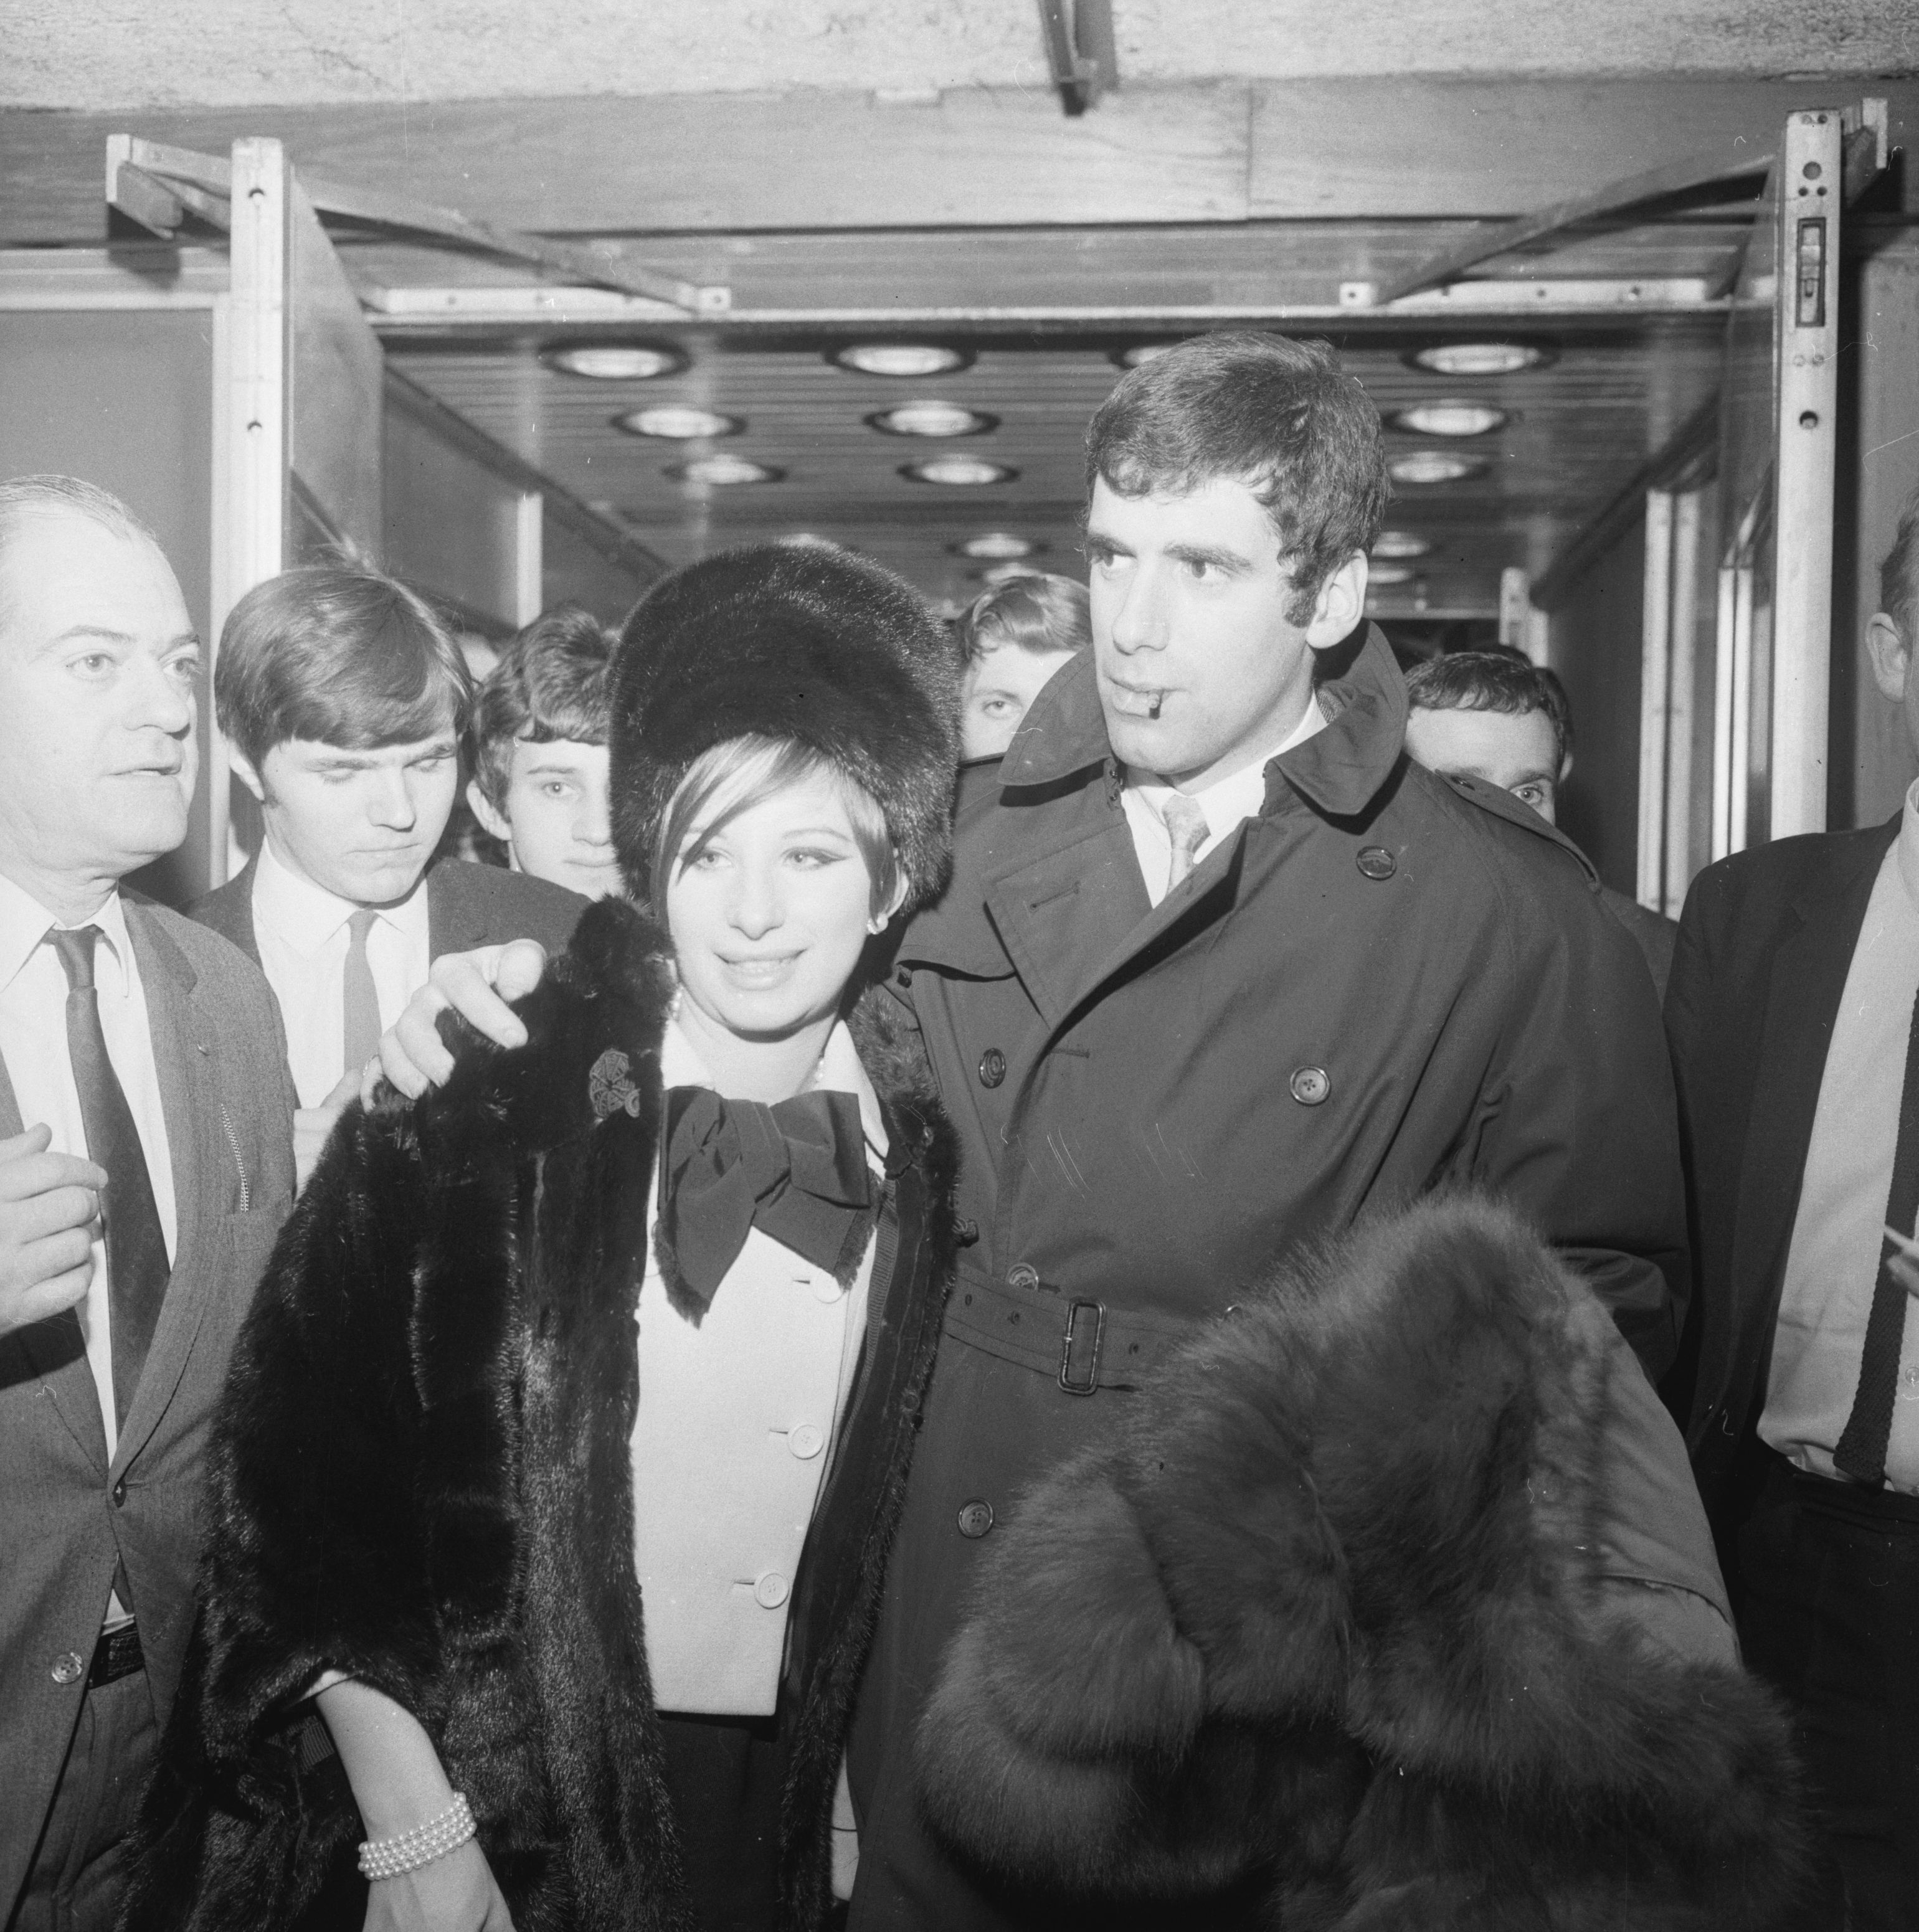 Barbra Streisand arrives at London Airport with her husband Elliott Gould in 1966 | Photo: GettyImages